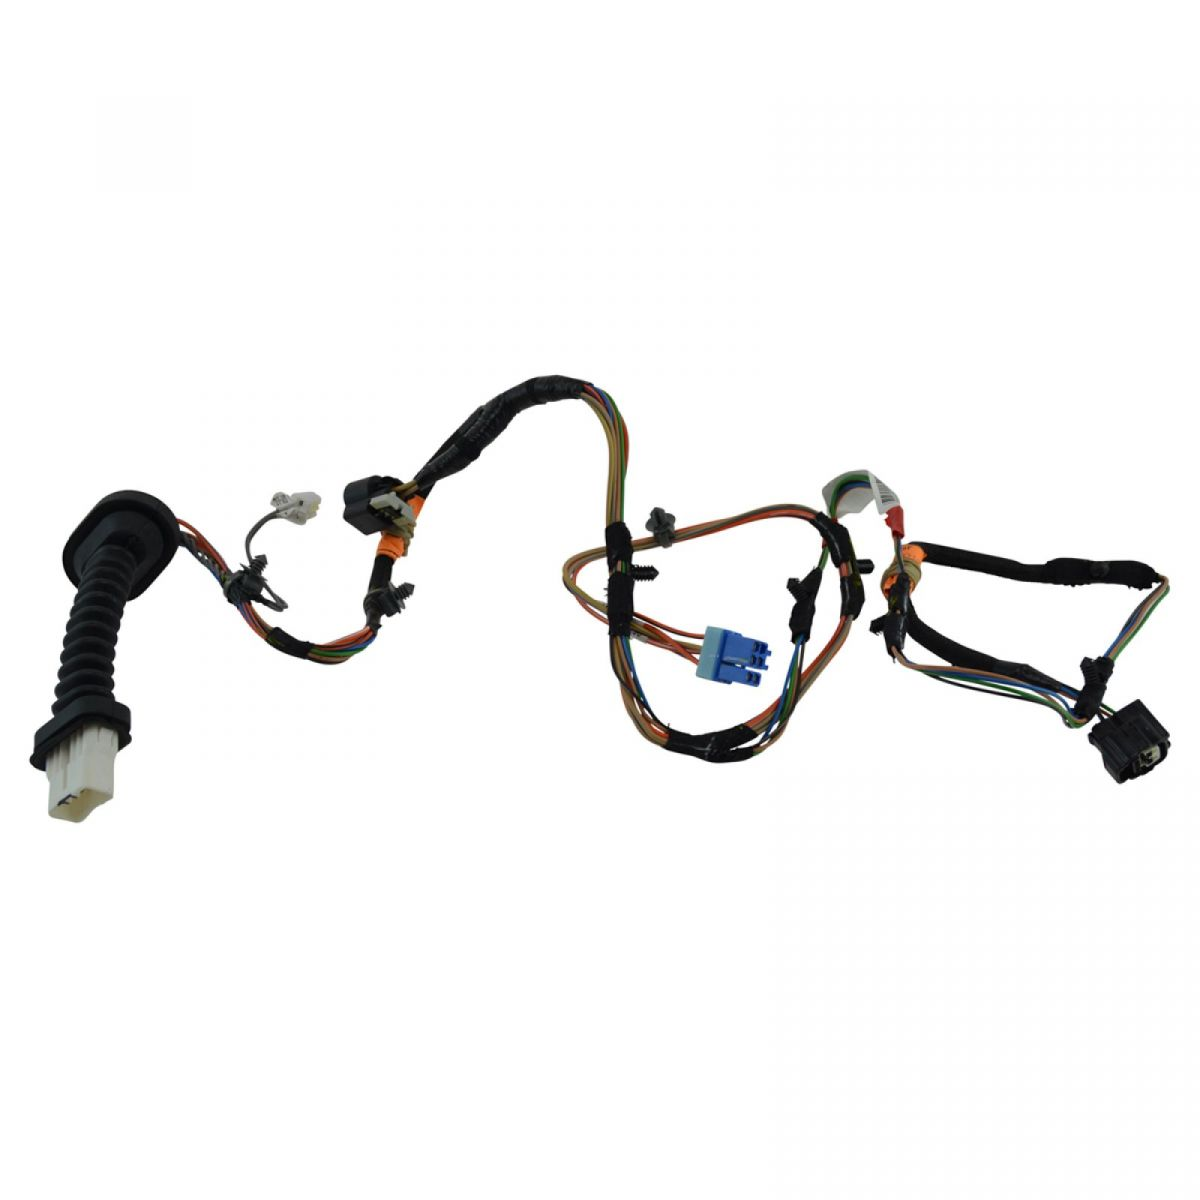 AM 3783557712 oem 56051393ac rear door wiring harness for 06 09 dodge ram mega 2007 dodge ram rear door wiring harness at webbmarketing.co